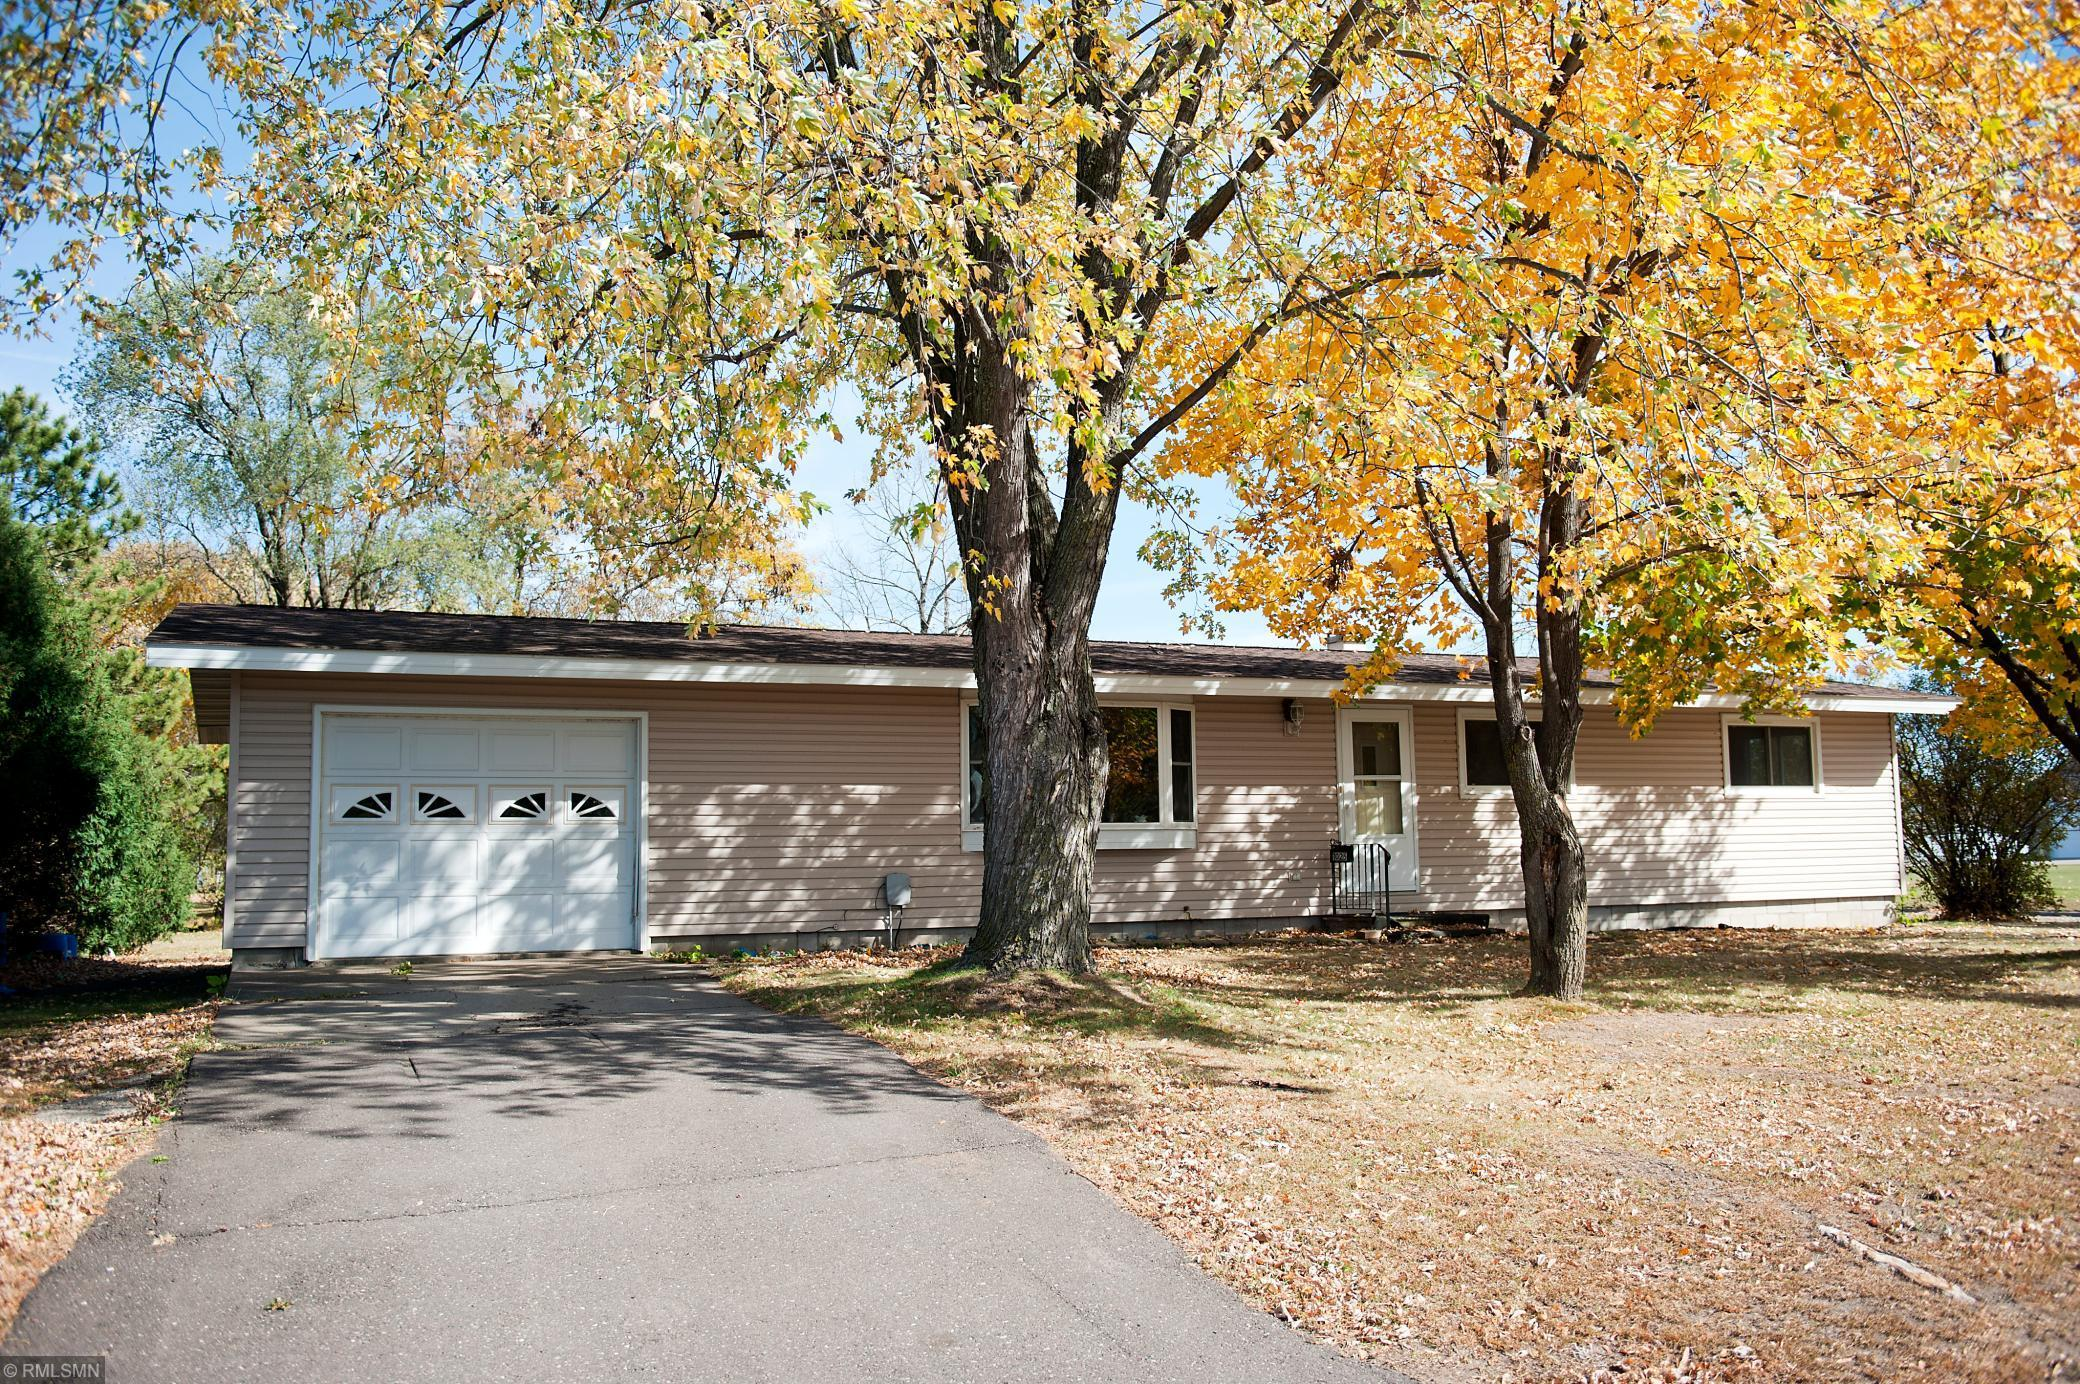 1025 S 7th Street Property Photo - Lake City, MN real estate listing